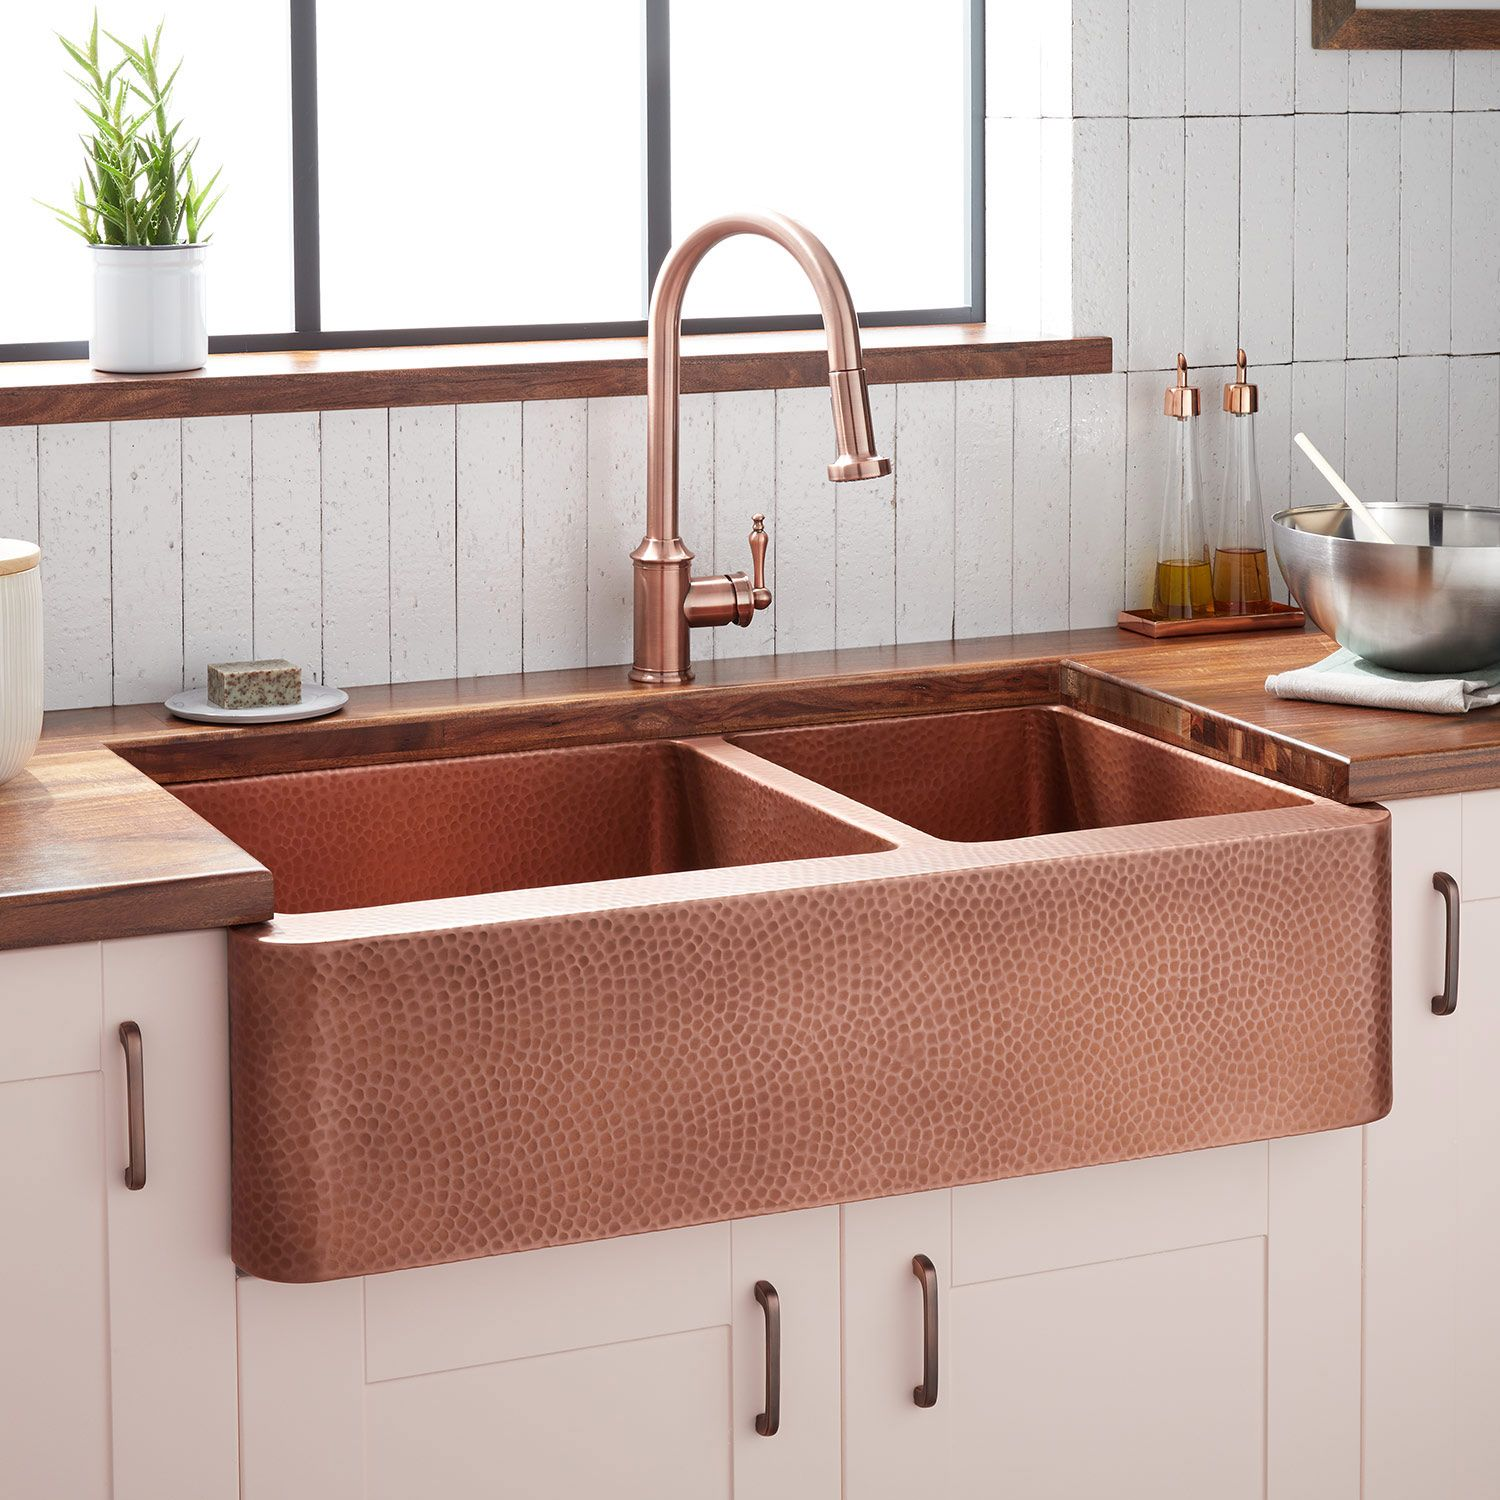 36 Tegan 70 30 Offset Double Bowl Hammered Copper Farmhouse Sink